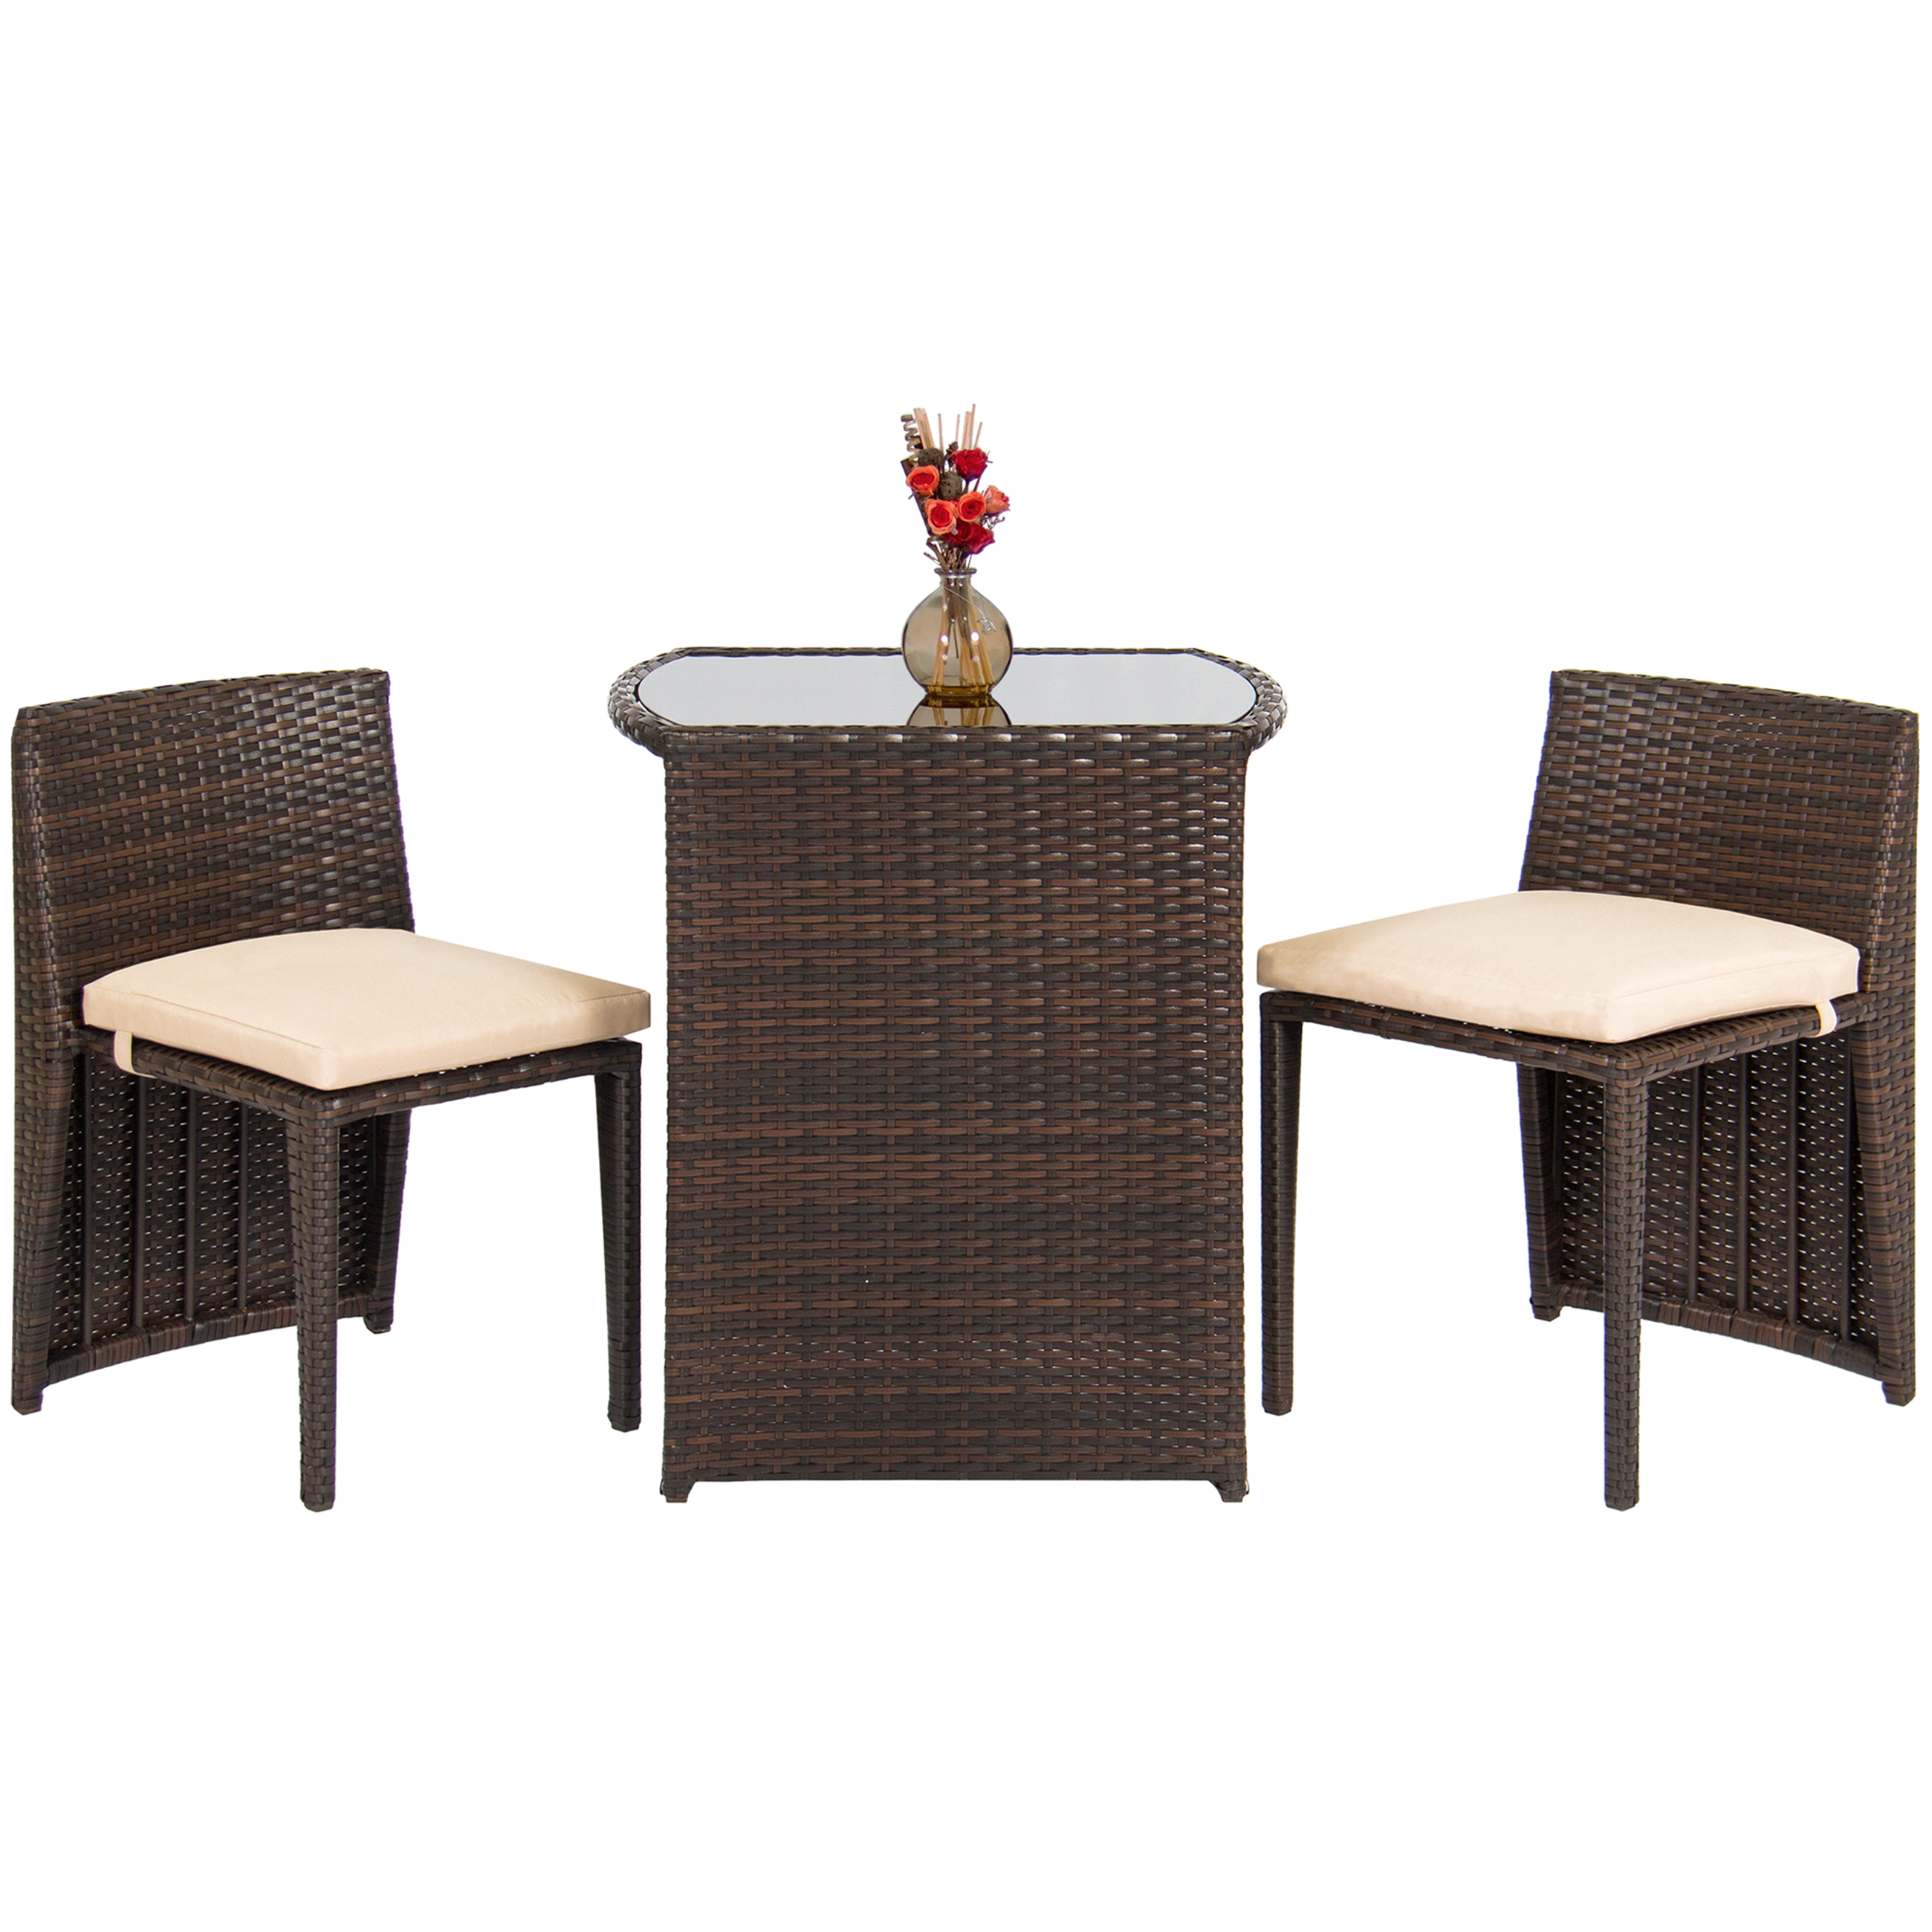 Best Choice Products Outdoor Patio Furniture Wicker 3pc Bistro Set W  Glass Top Table, 2 Chairs- Brown by